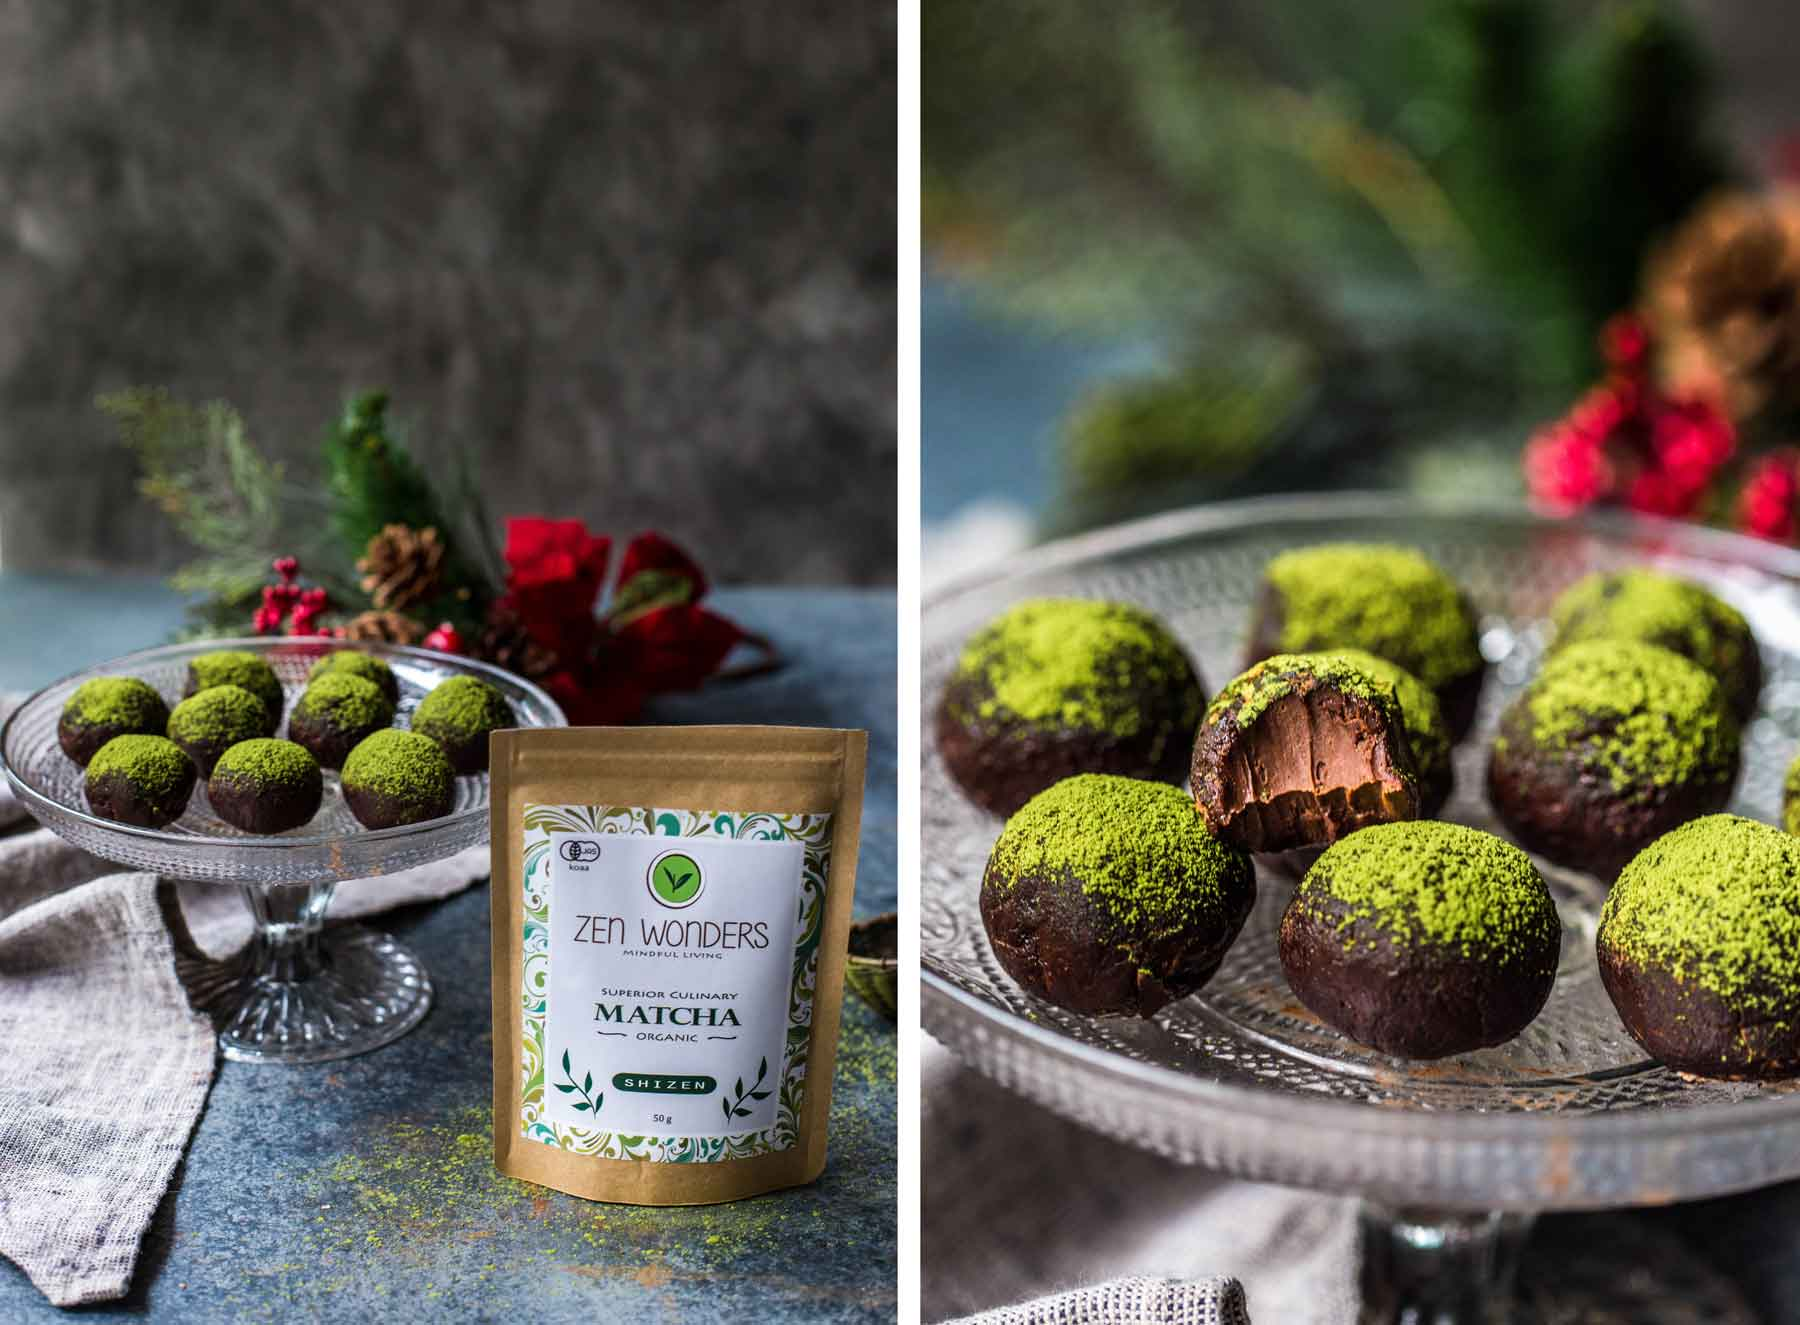 A packet of organic Zen Wonders Matcha next to Chocolate Matcha Truffles